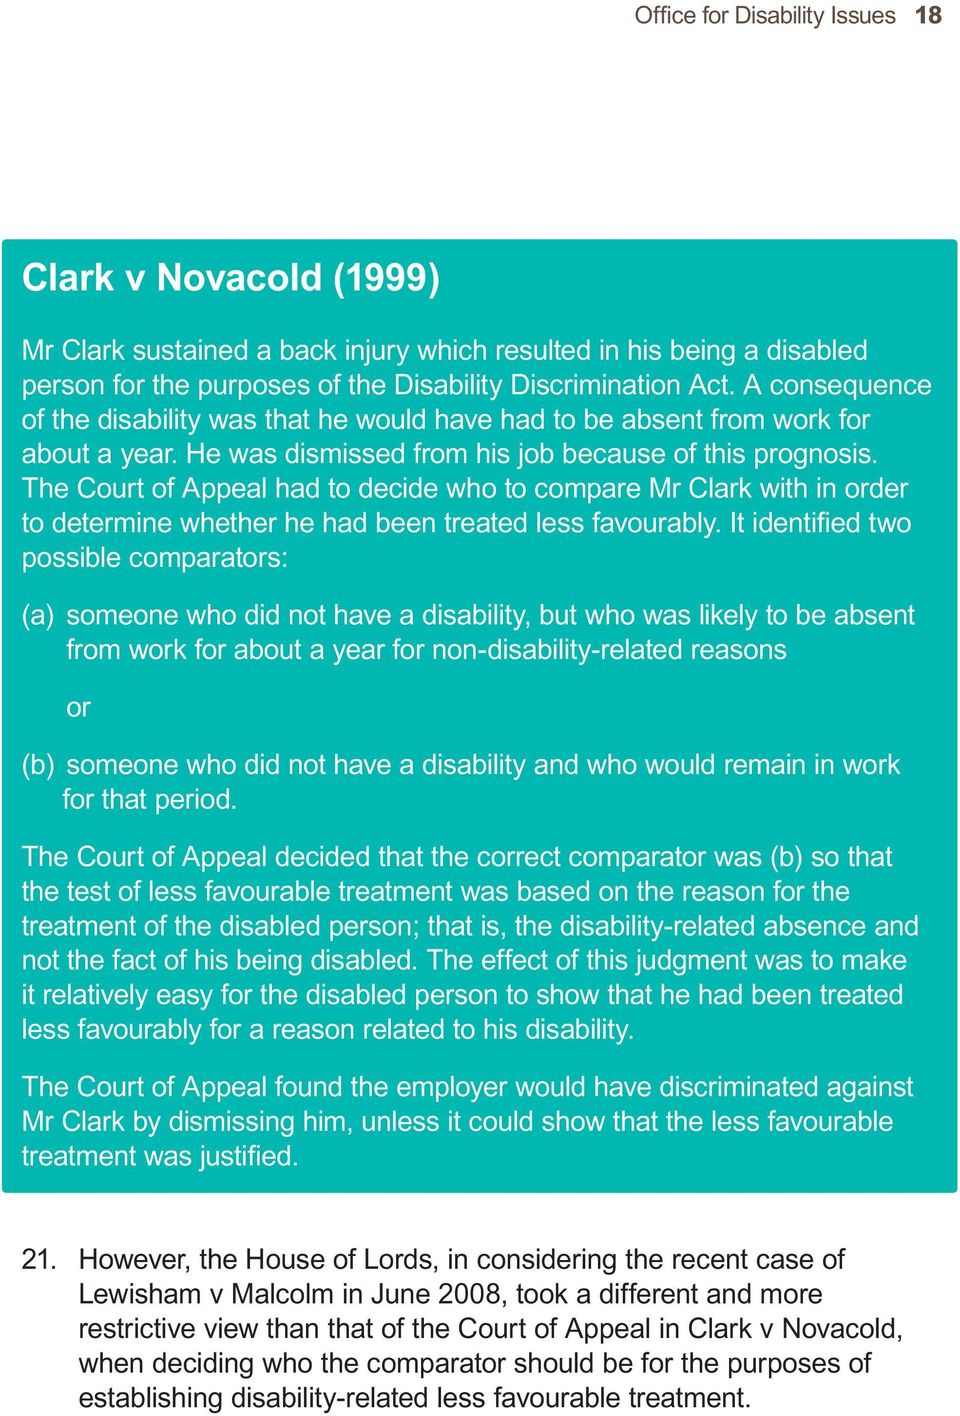 The Court of Appeal had to decide who to compare Mr Clark with in order to determine whether he had been treated less favourably.